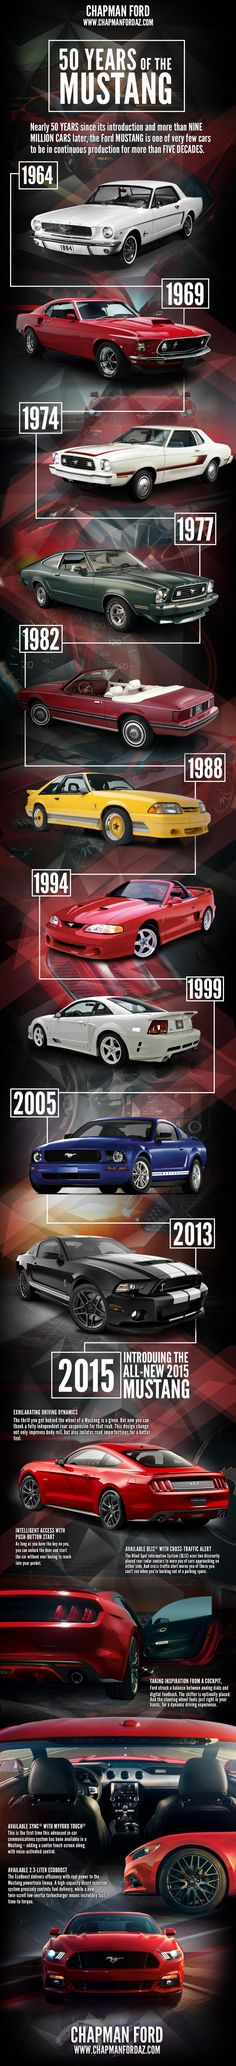 Look Back At the Iconic Ford Mustang